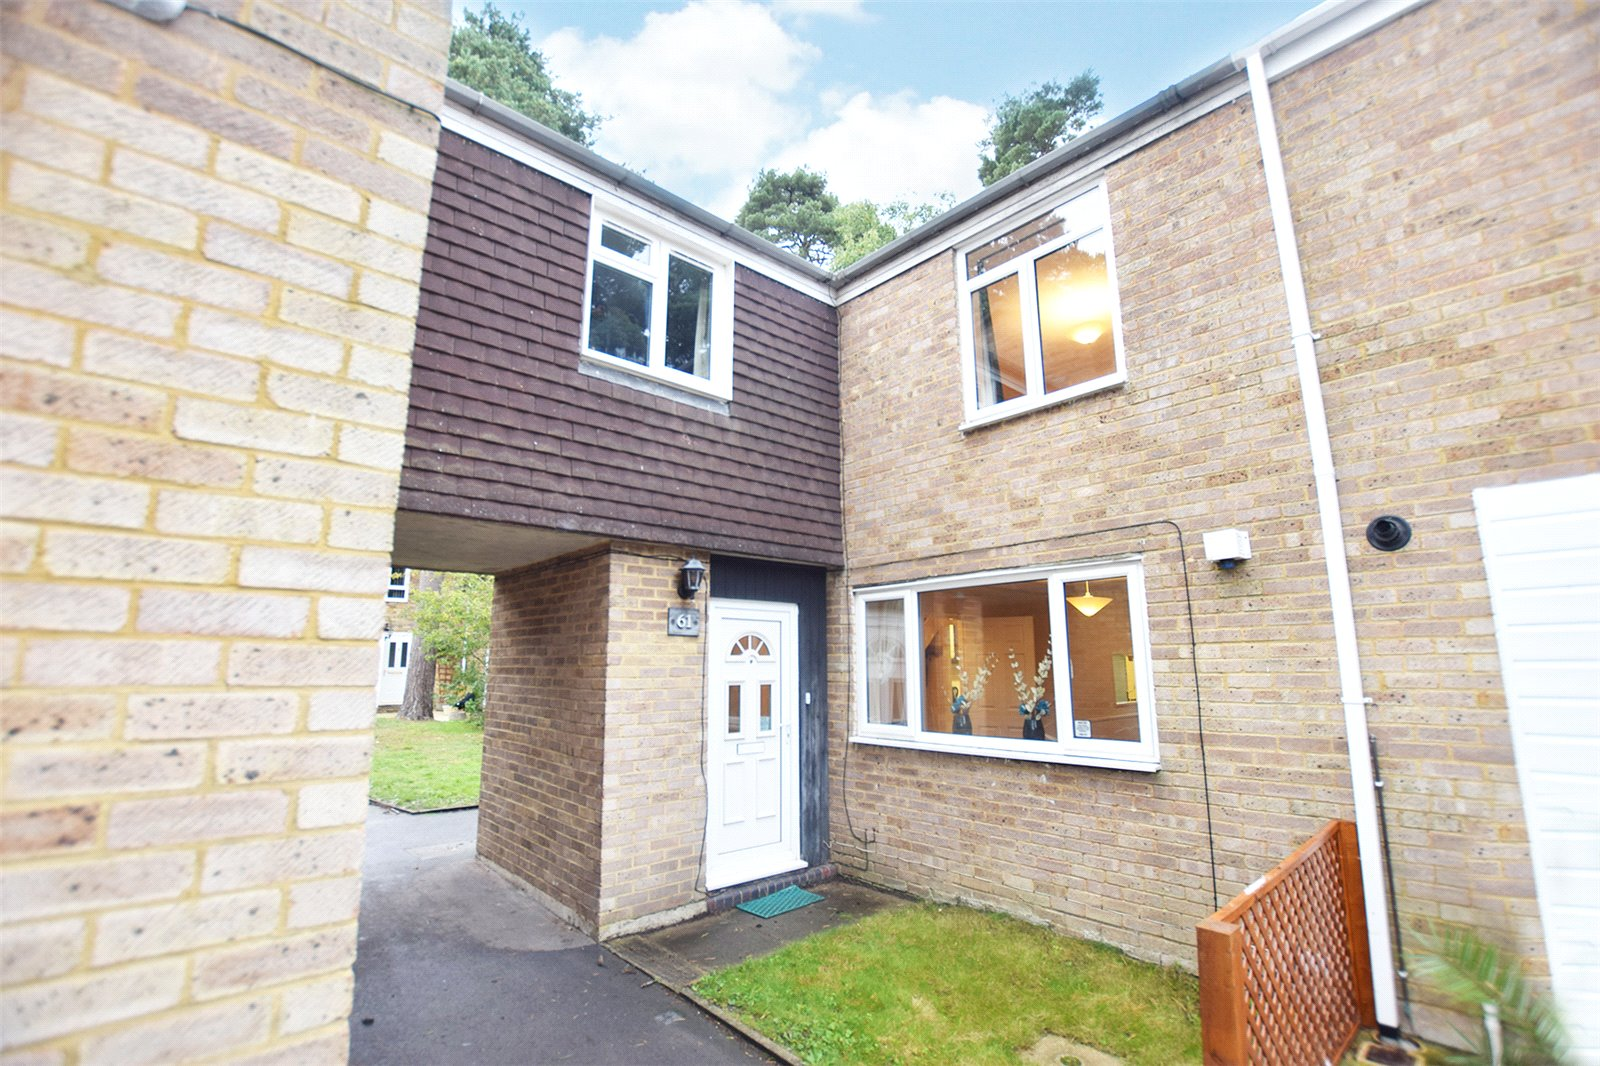 2 Bedrooms Terraced House for sale in Bucklebury, Bracknell, Berkshire, RG12